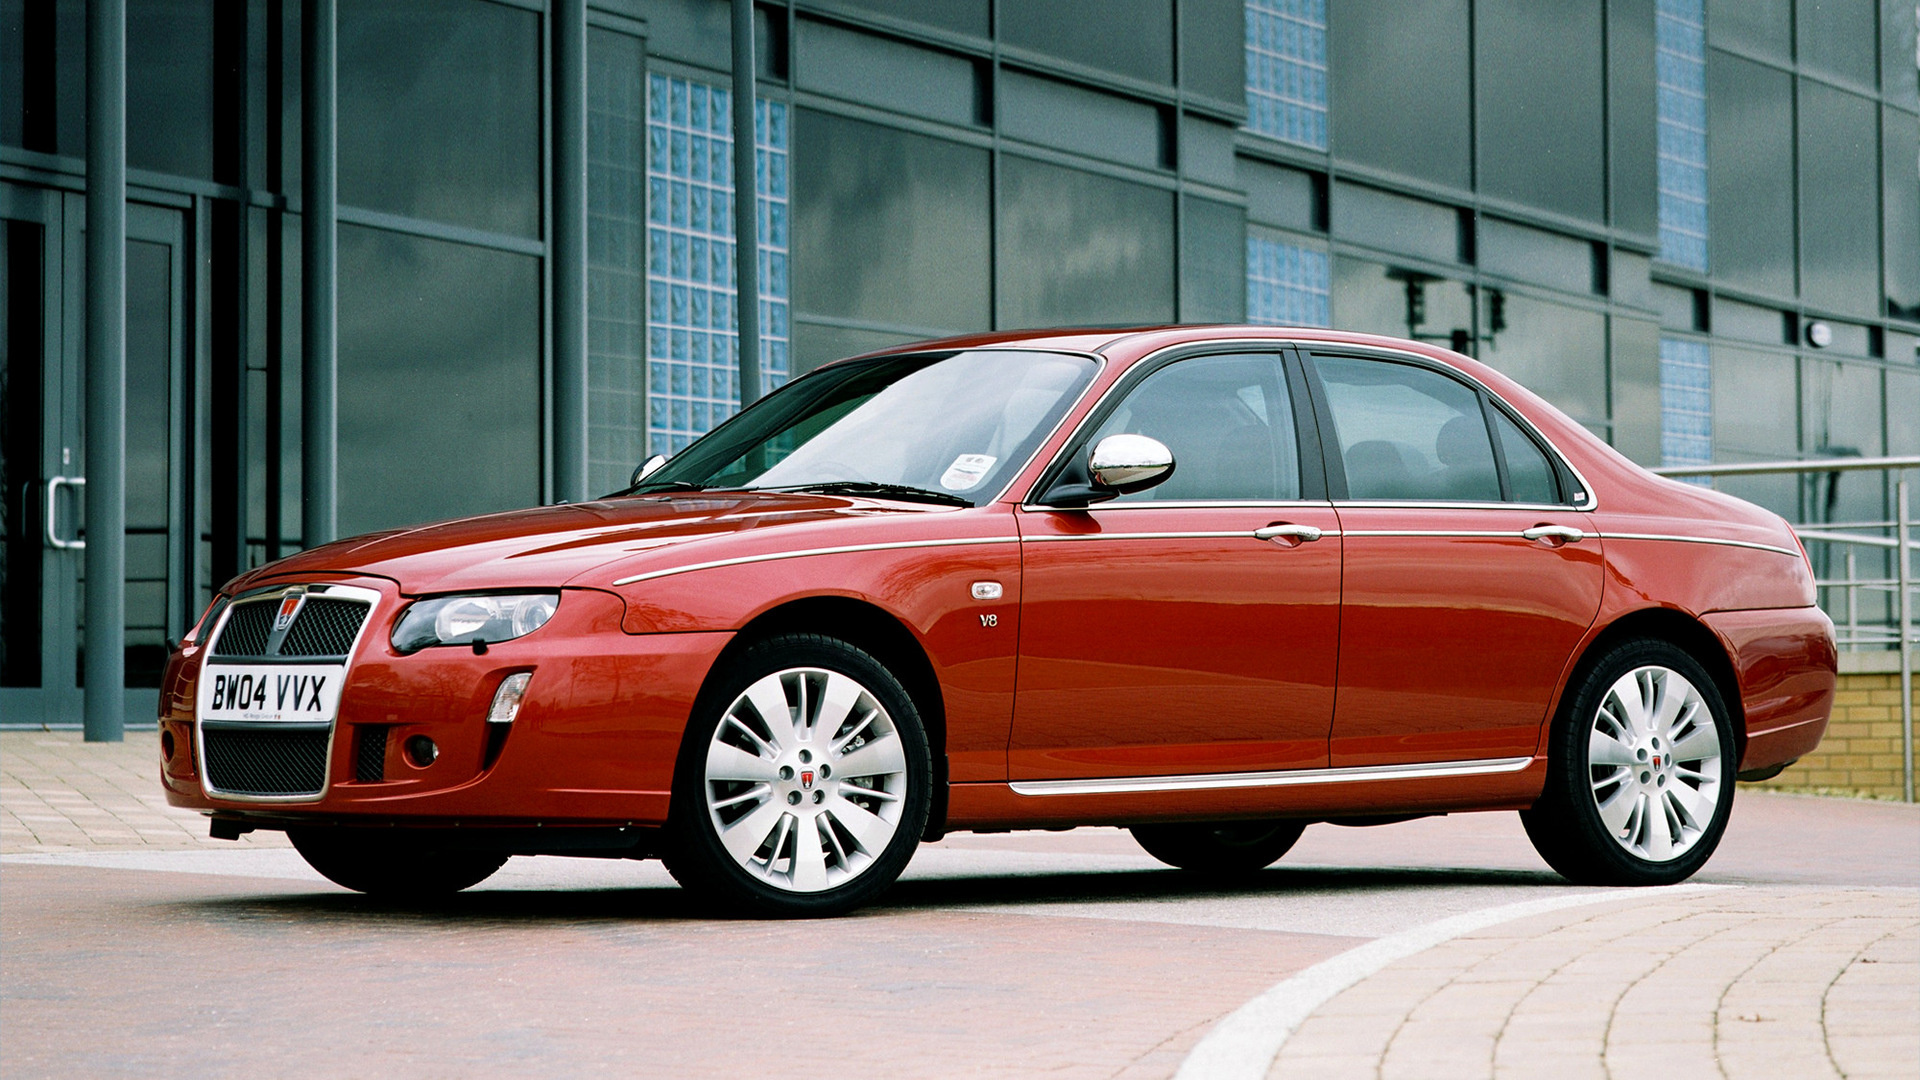 2004 Rover 75 V8 - Wallpapers and HD Images | Car Pixel